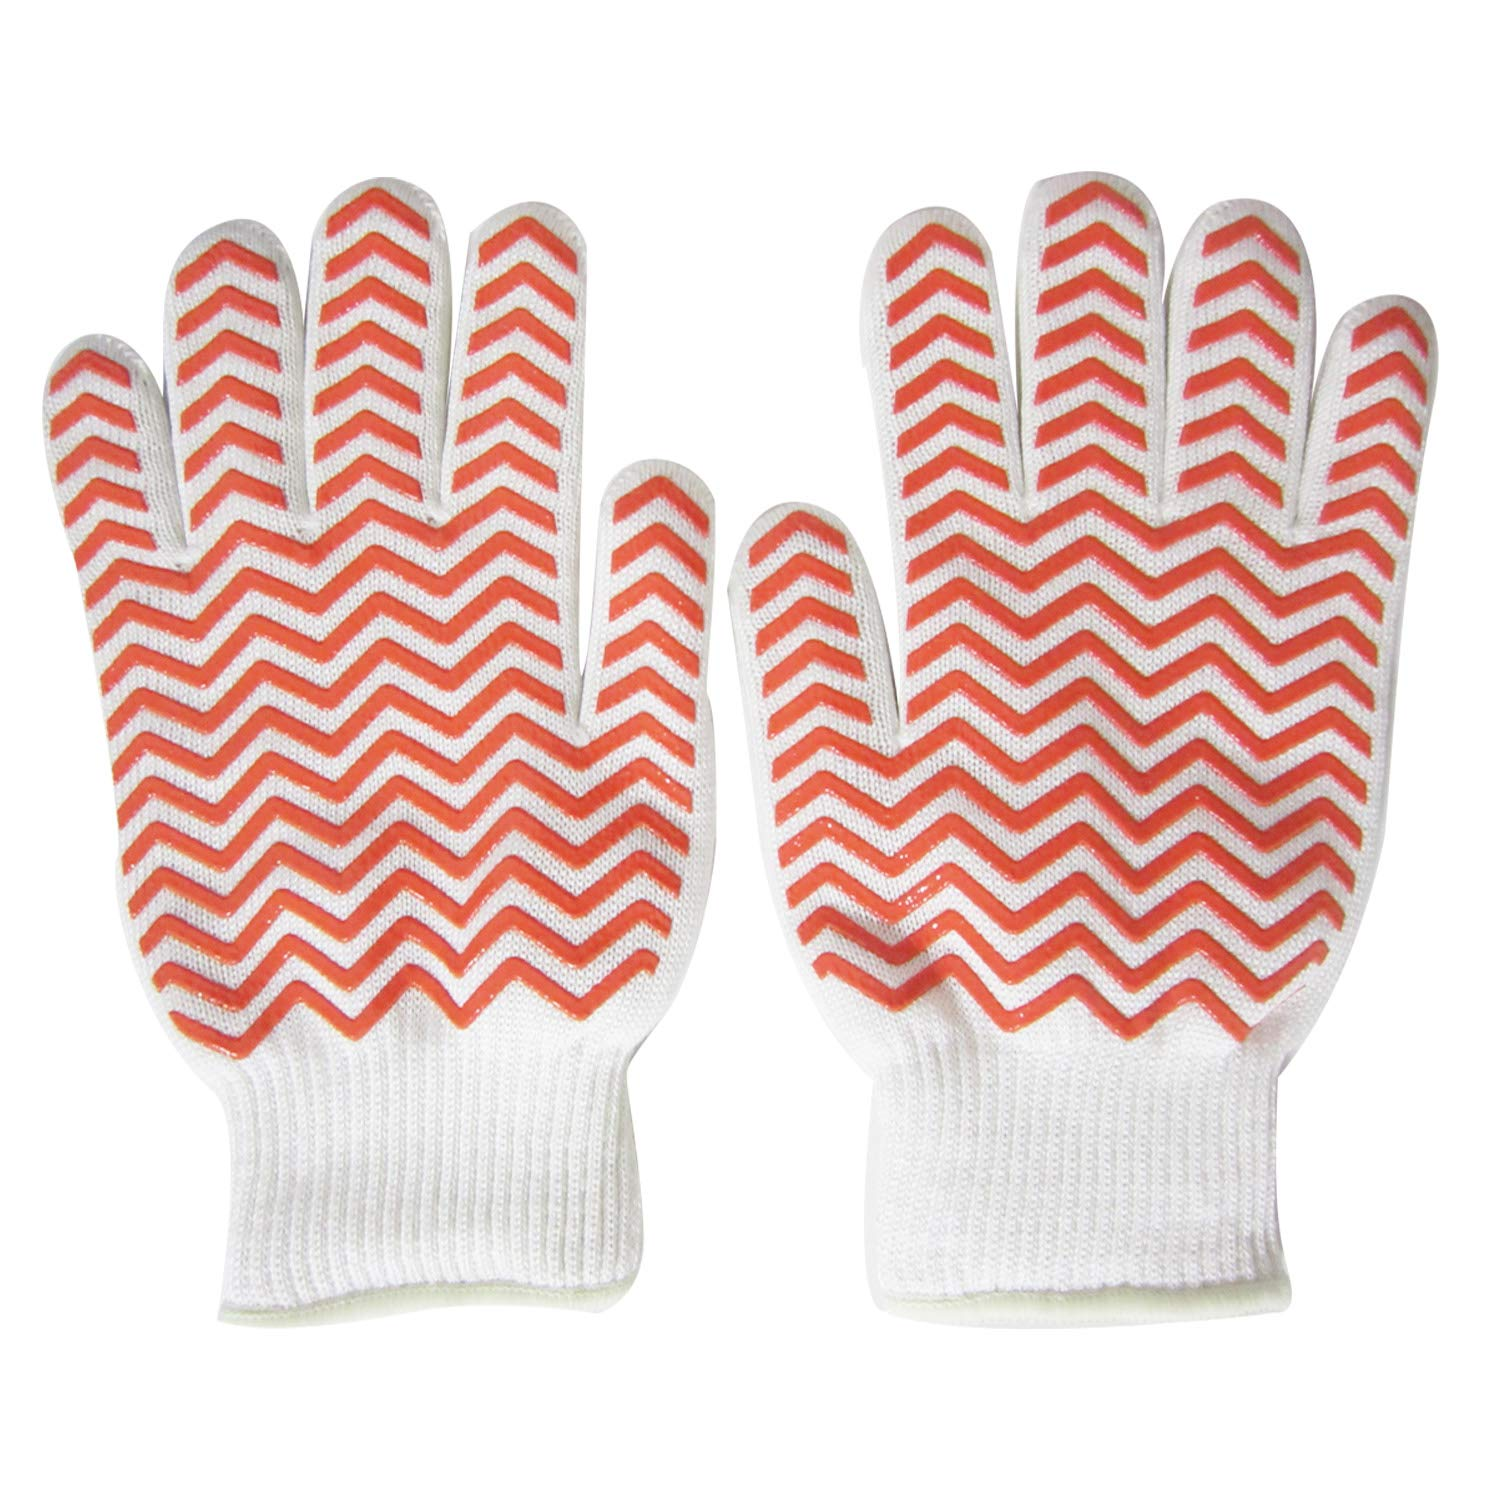 Heat Resistant Gloves Protective Gloves Oven Mitts BBQ Gloves Barbecue Gloves Grill Gloves Kitchen Gloves Best Cooking Silicone Gloves For Barbecue Grilling Boiling Outdoor and Kitchen (Orange Gloves)